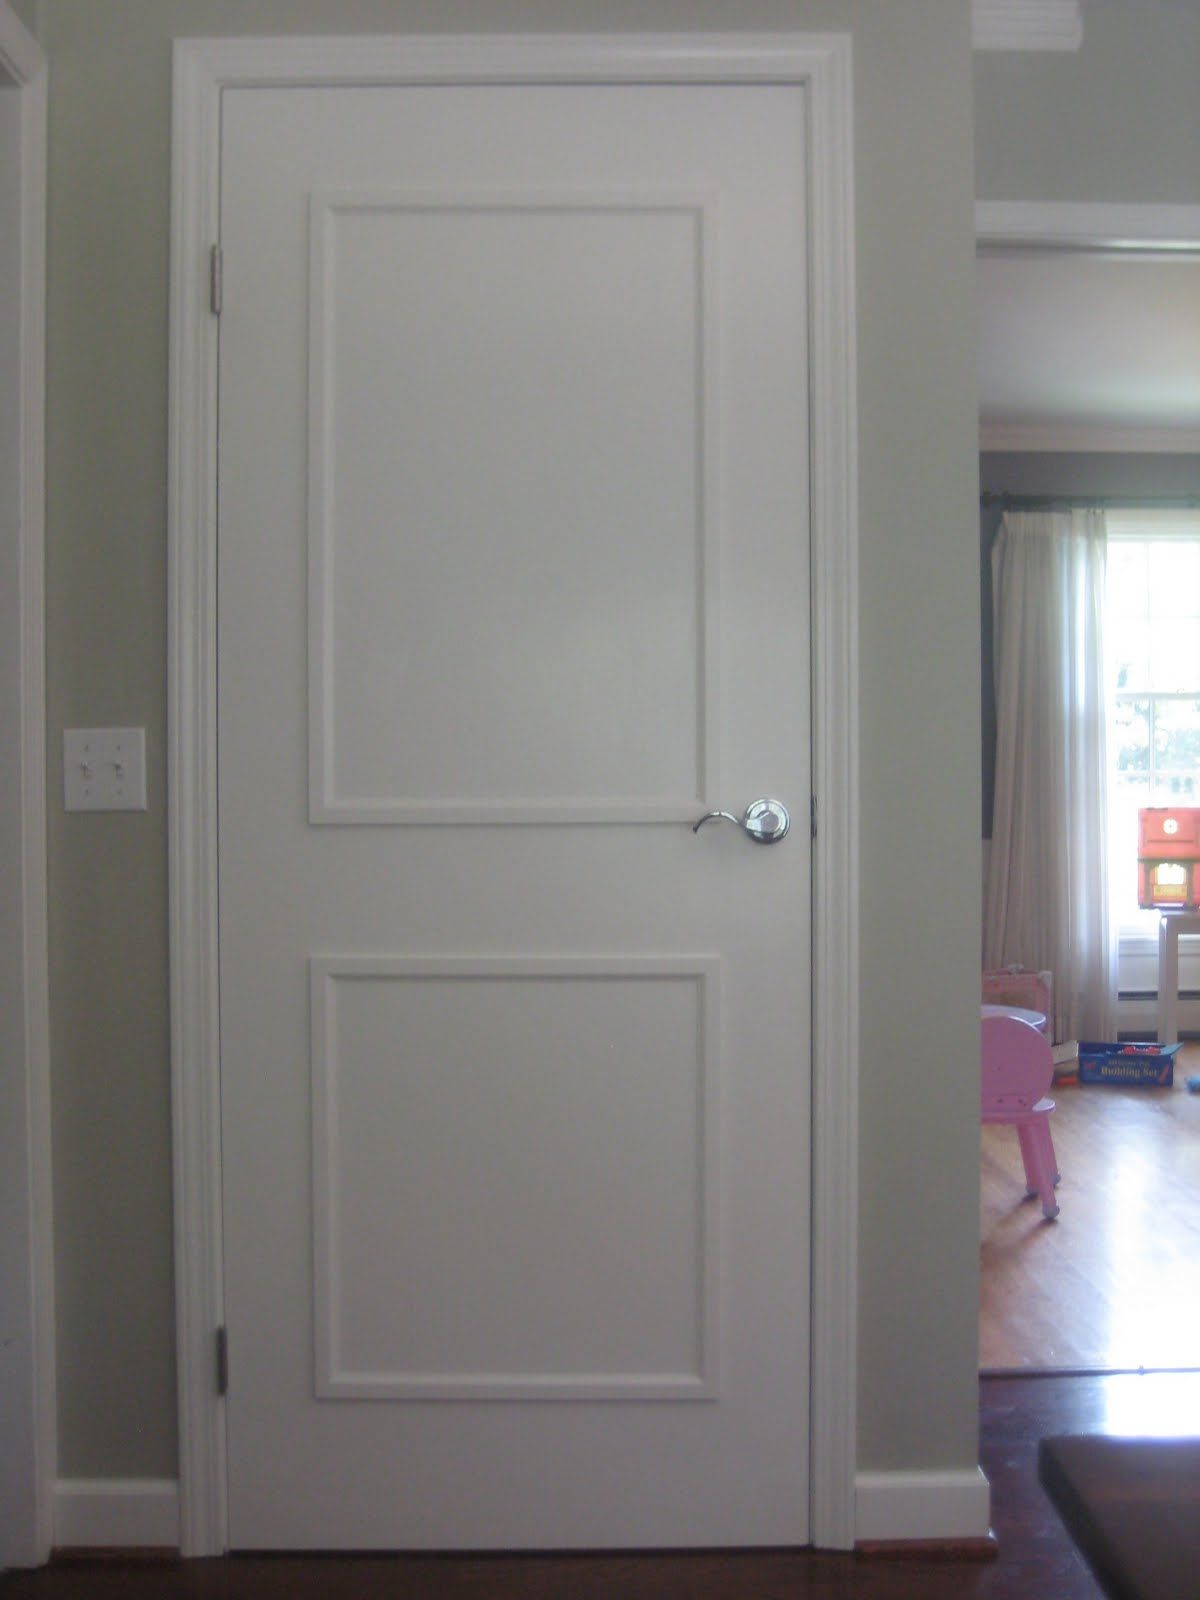 Plain White Door paint in my hair: adding molding and paint to 60s brown flat plain